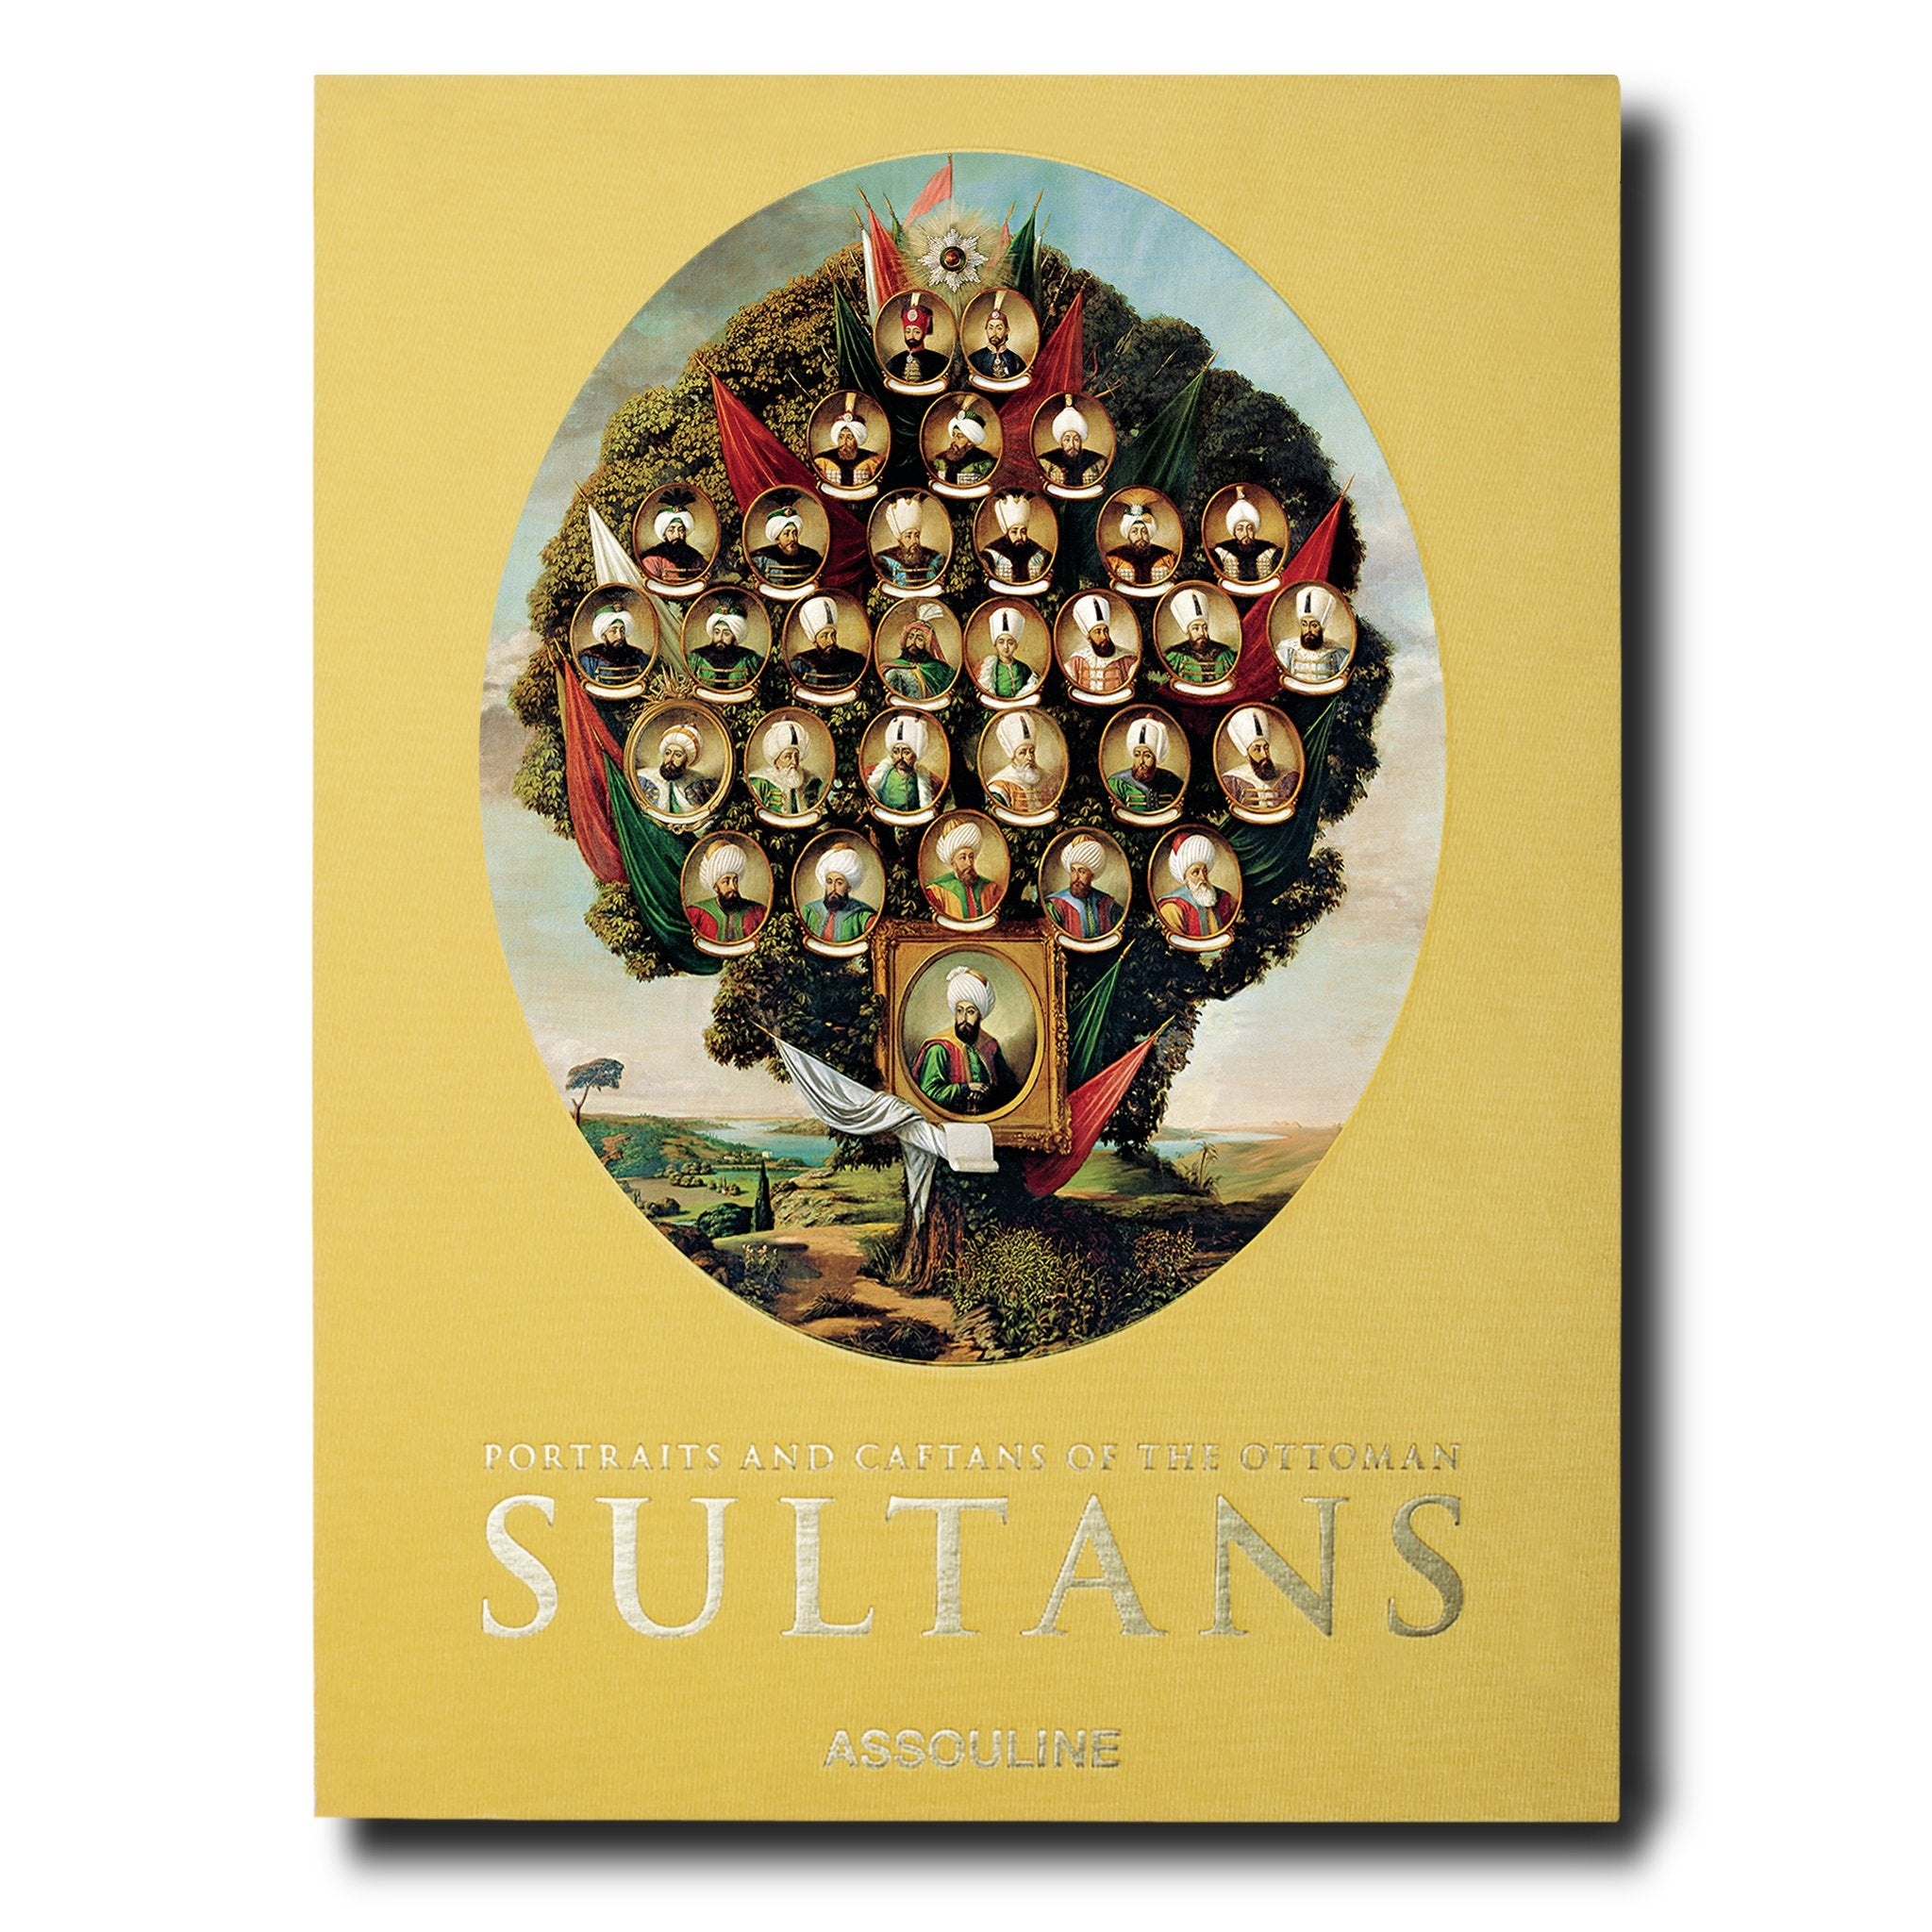 Portraits and Caftans of the Ottoman Sultans (Special Edition) - Assouline